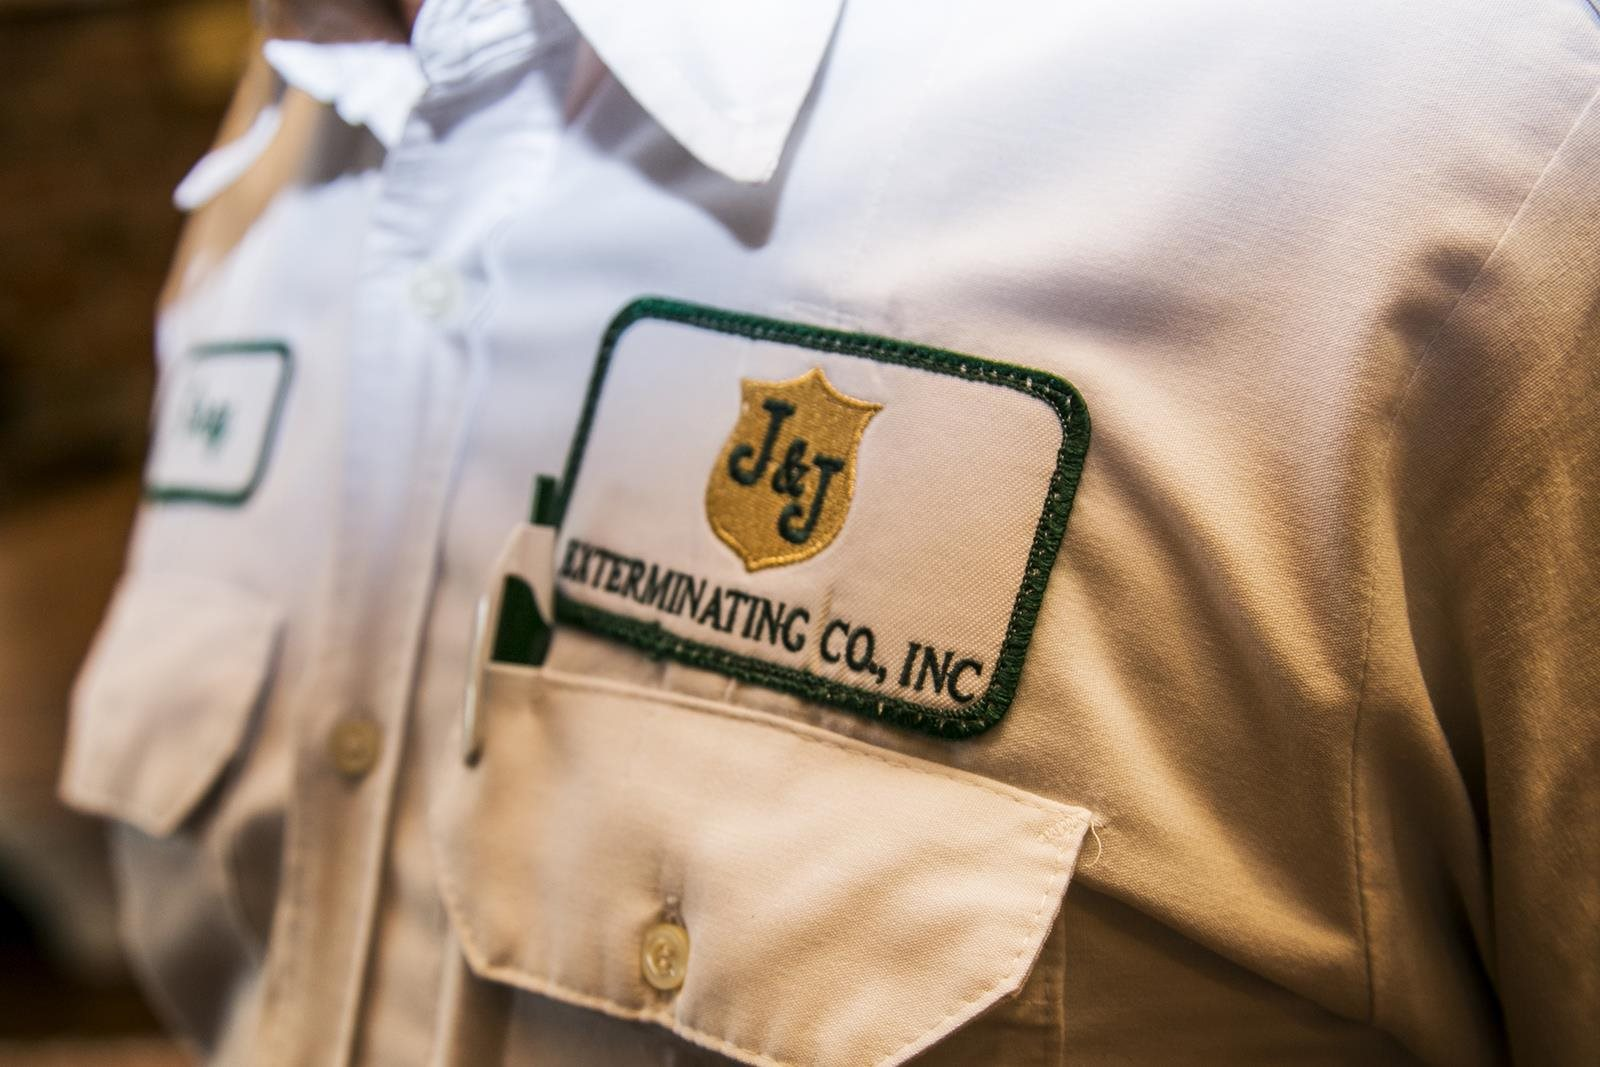 J&J Exterminating badge on pest control operator's shirt